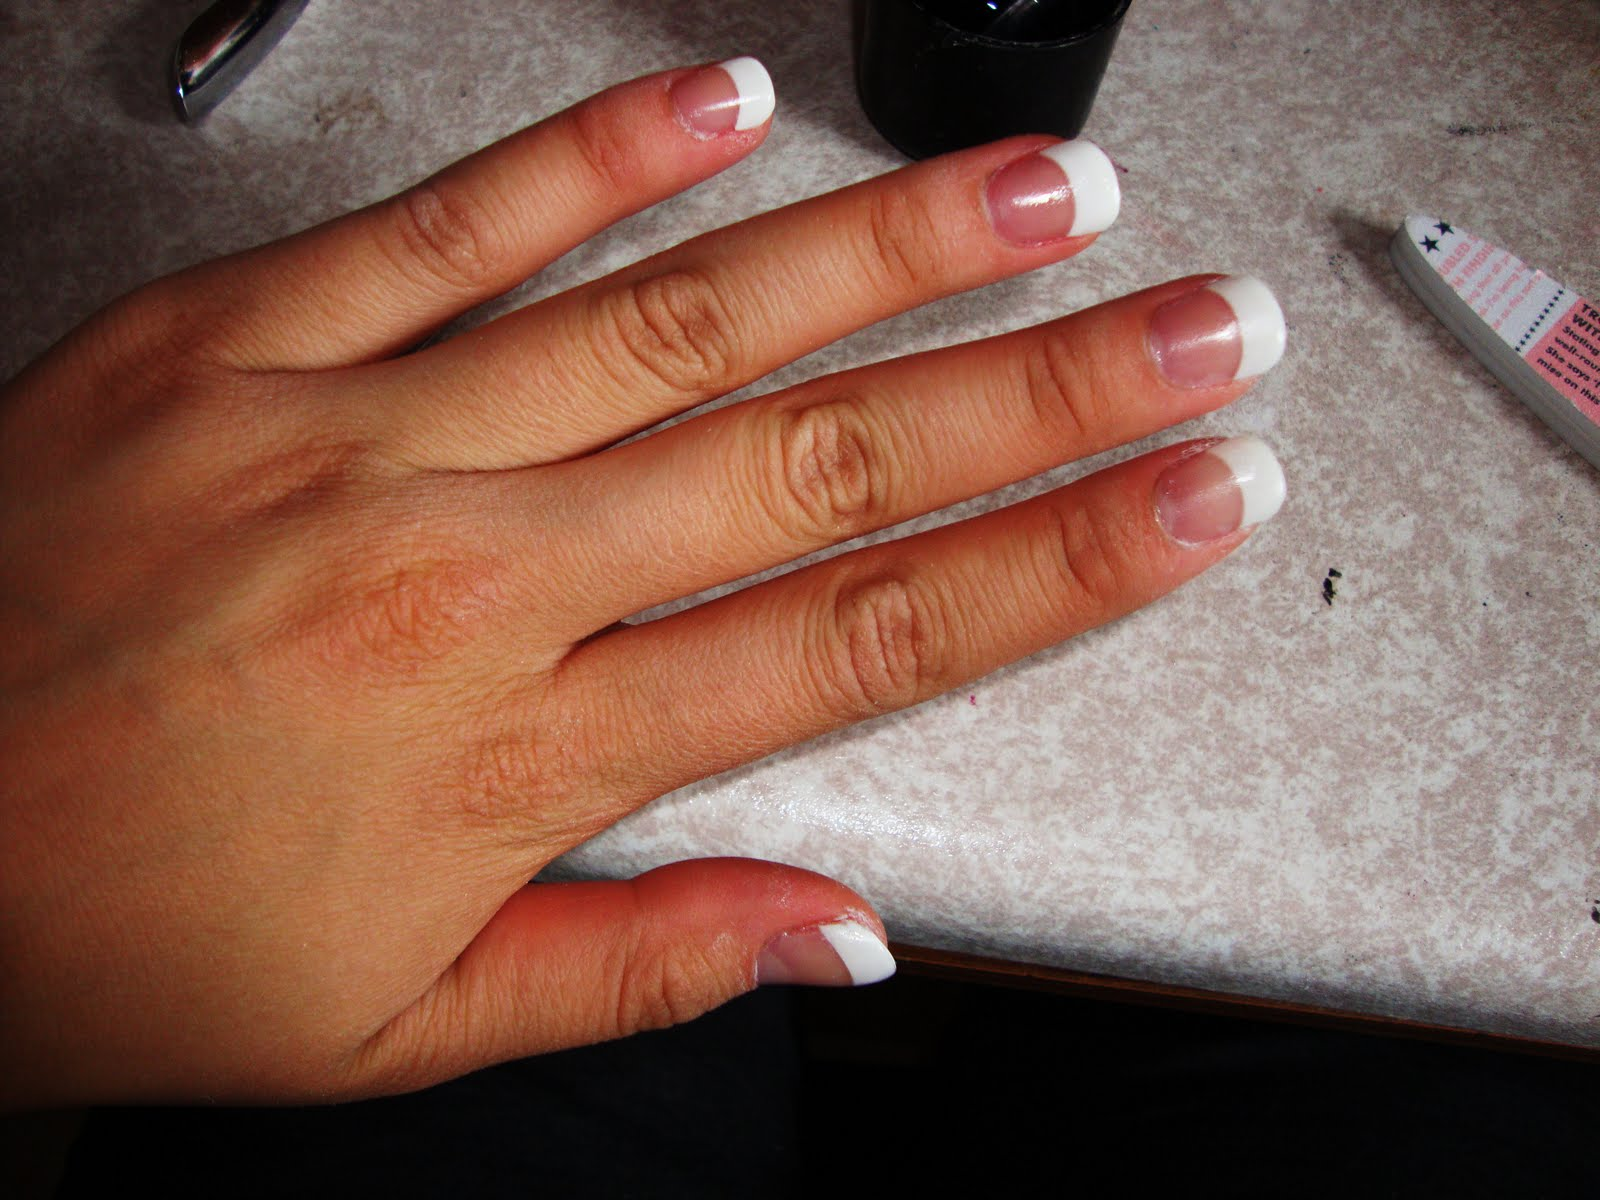 Yahoo! Answers - Are fake nails bad for you? What are the bad